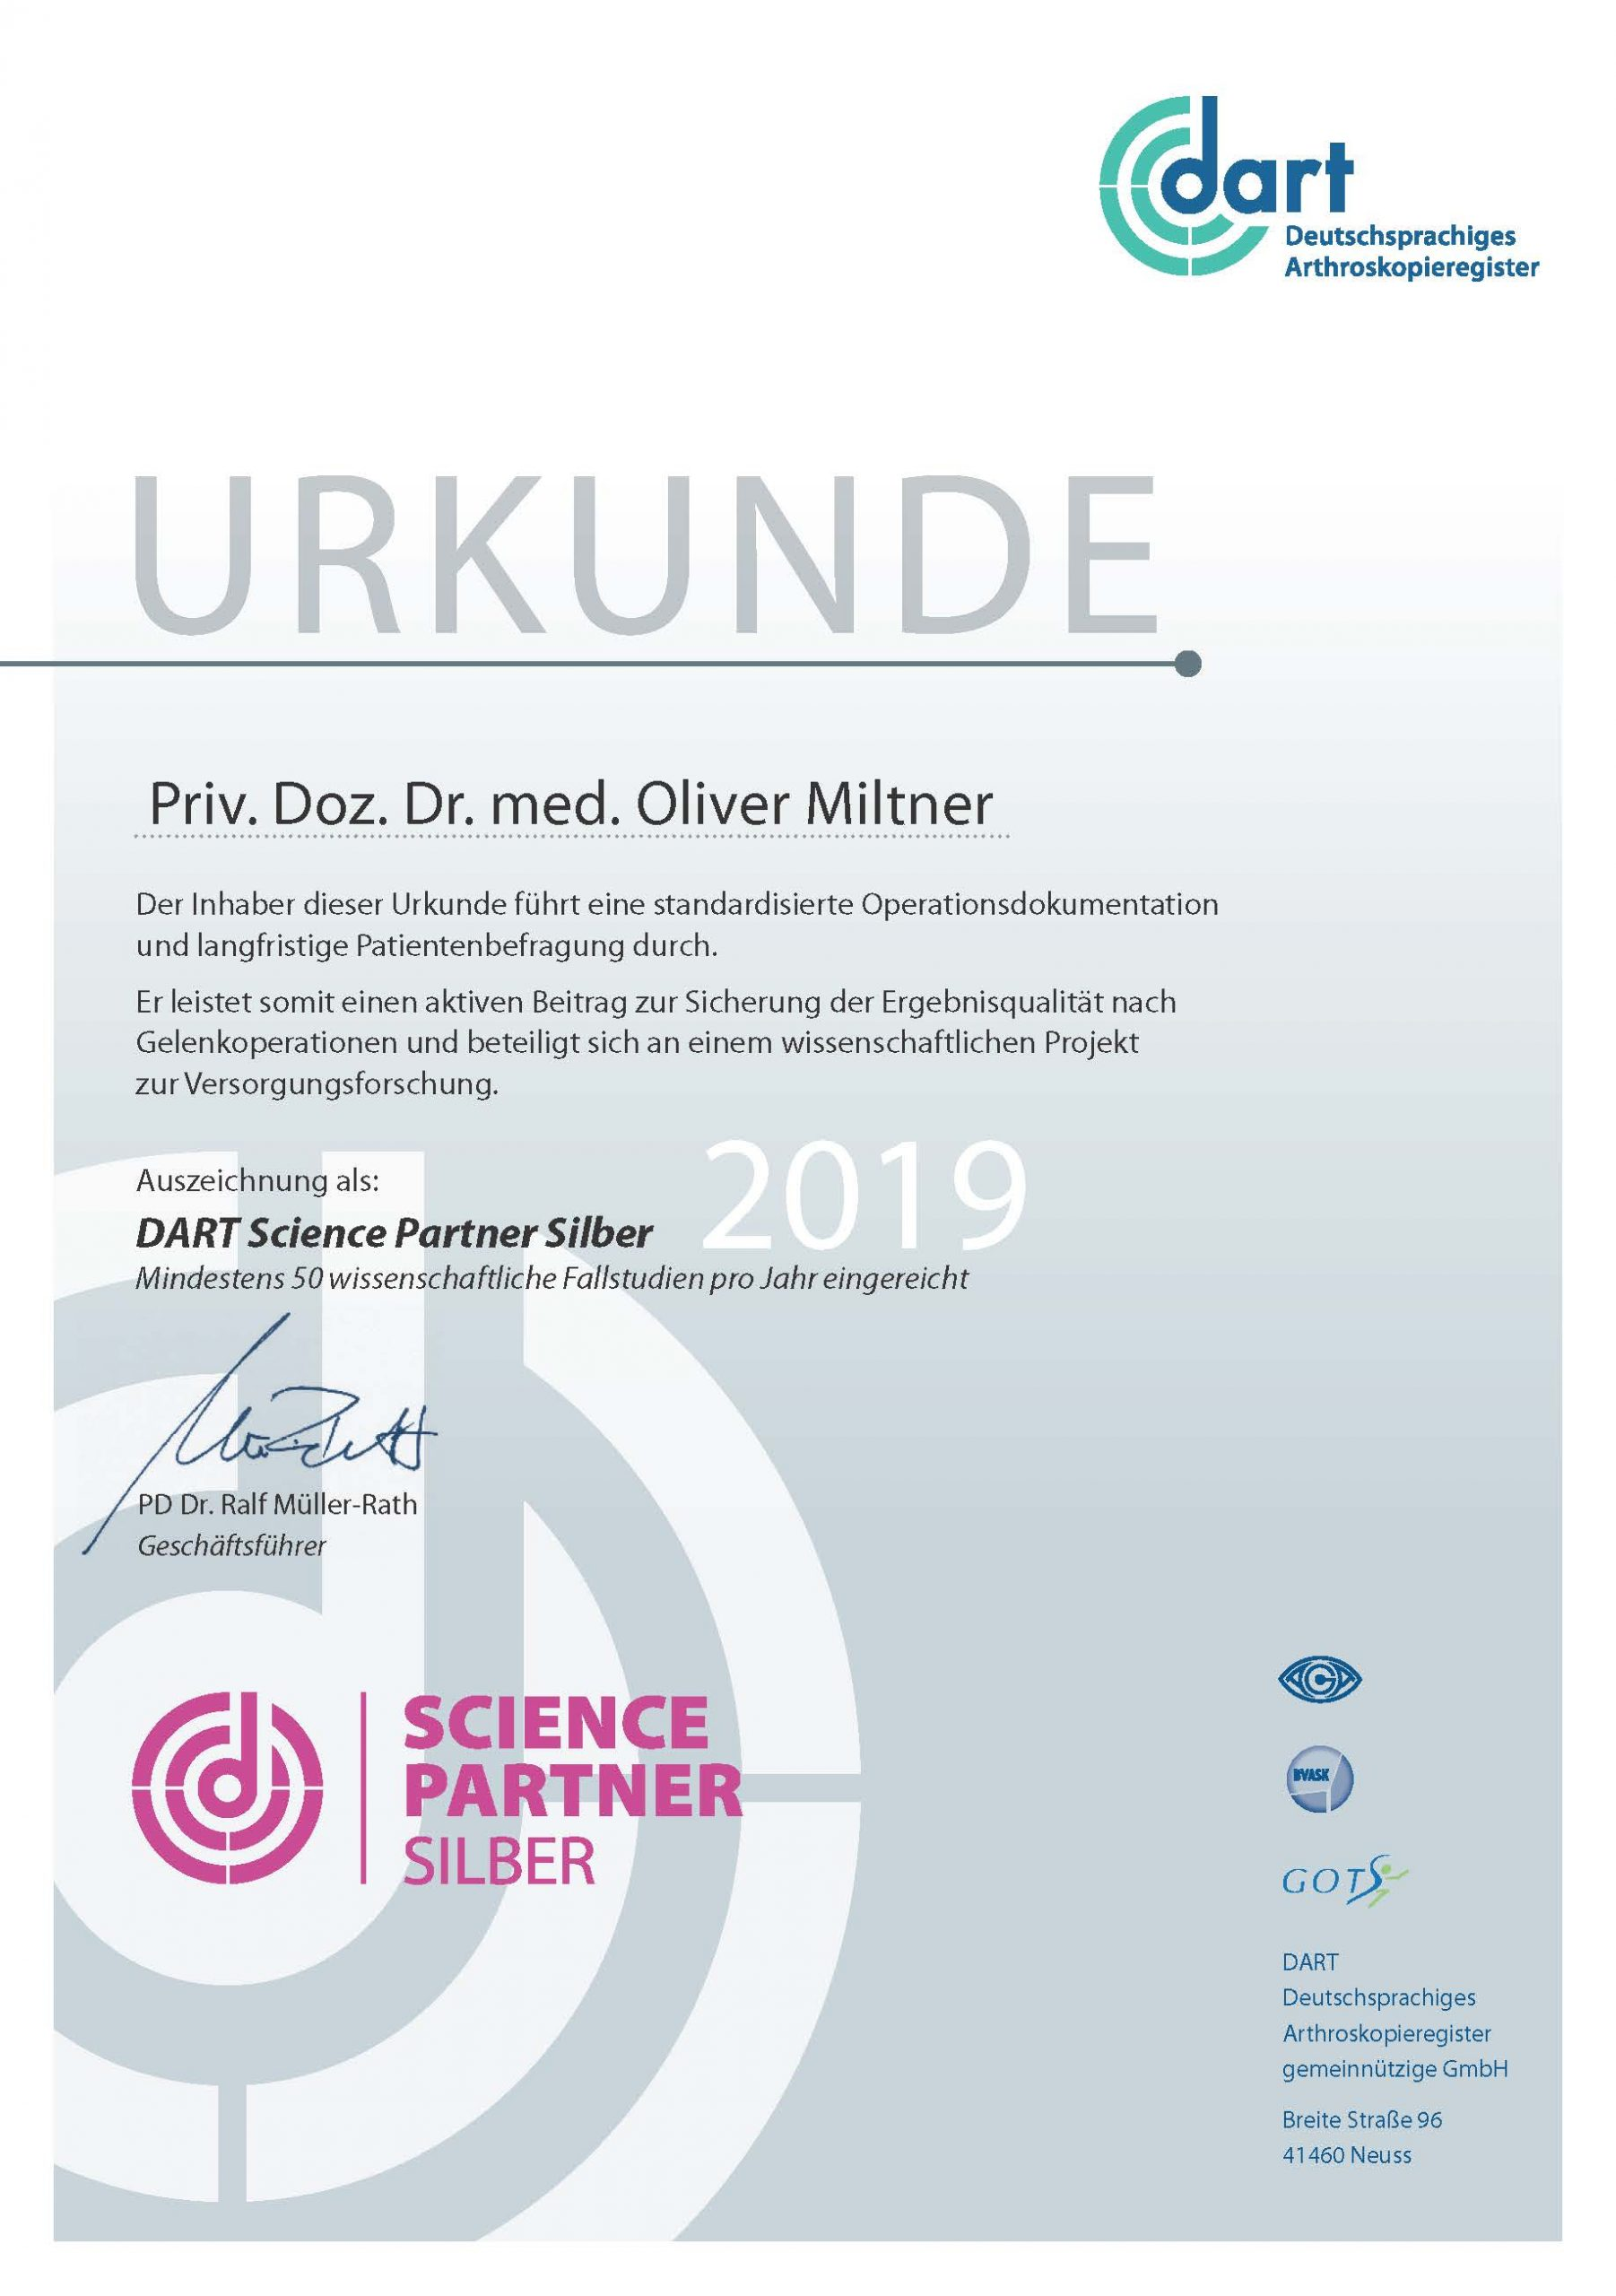 Science Partner Silber 2019